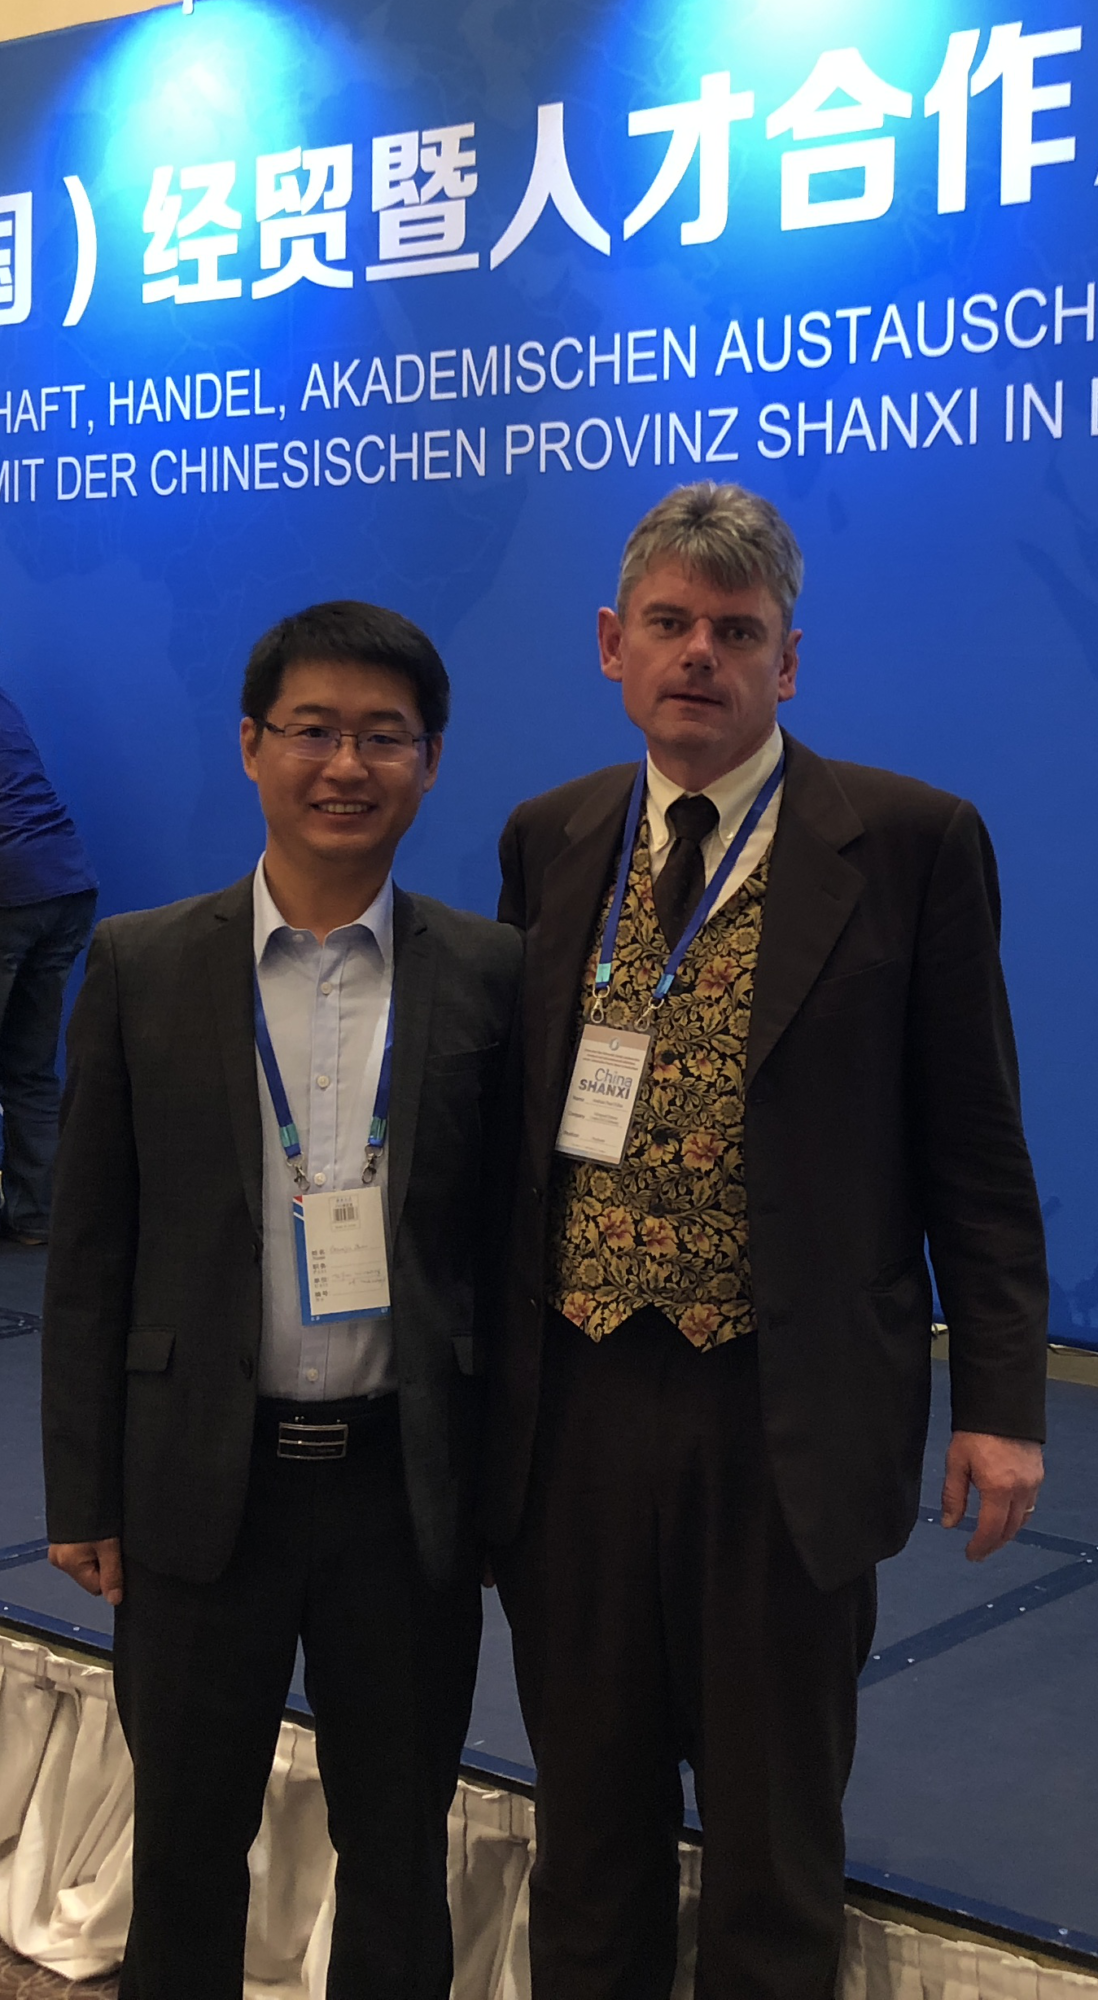 Andreas P. Fröba with Dr. Guanjia Zhao from Taiyuan University of Technology